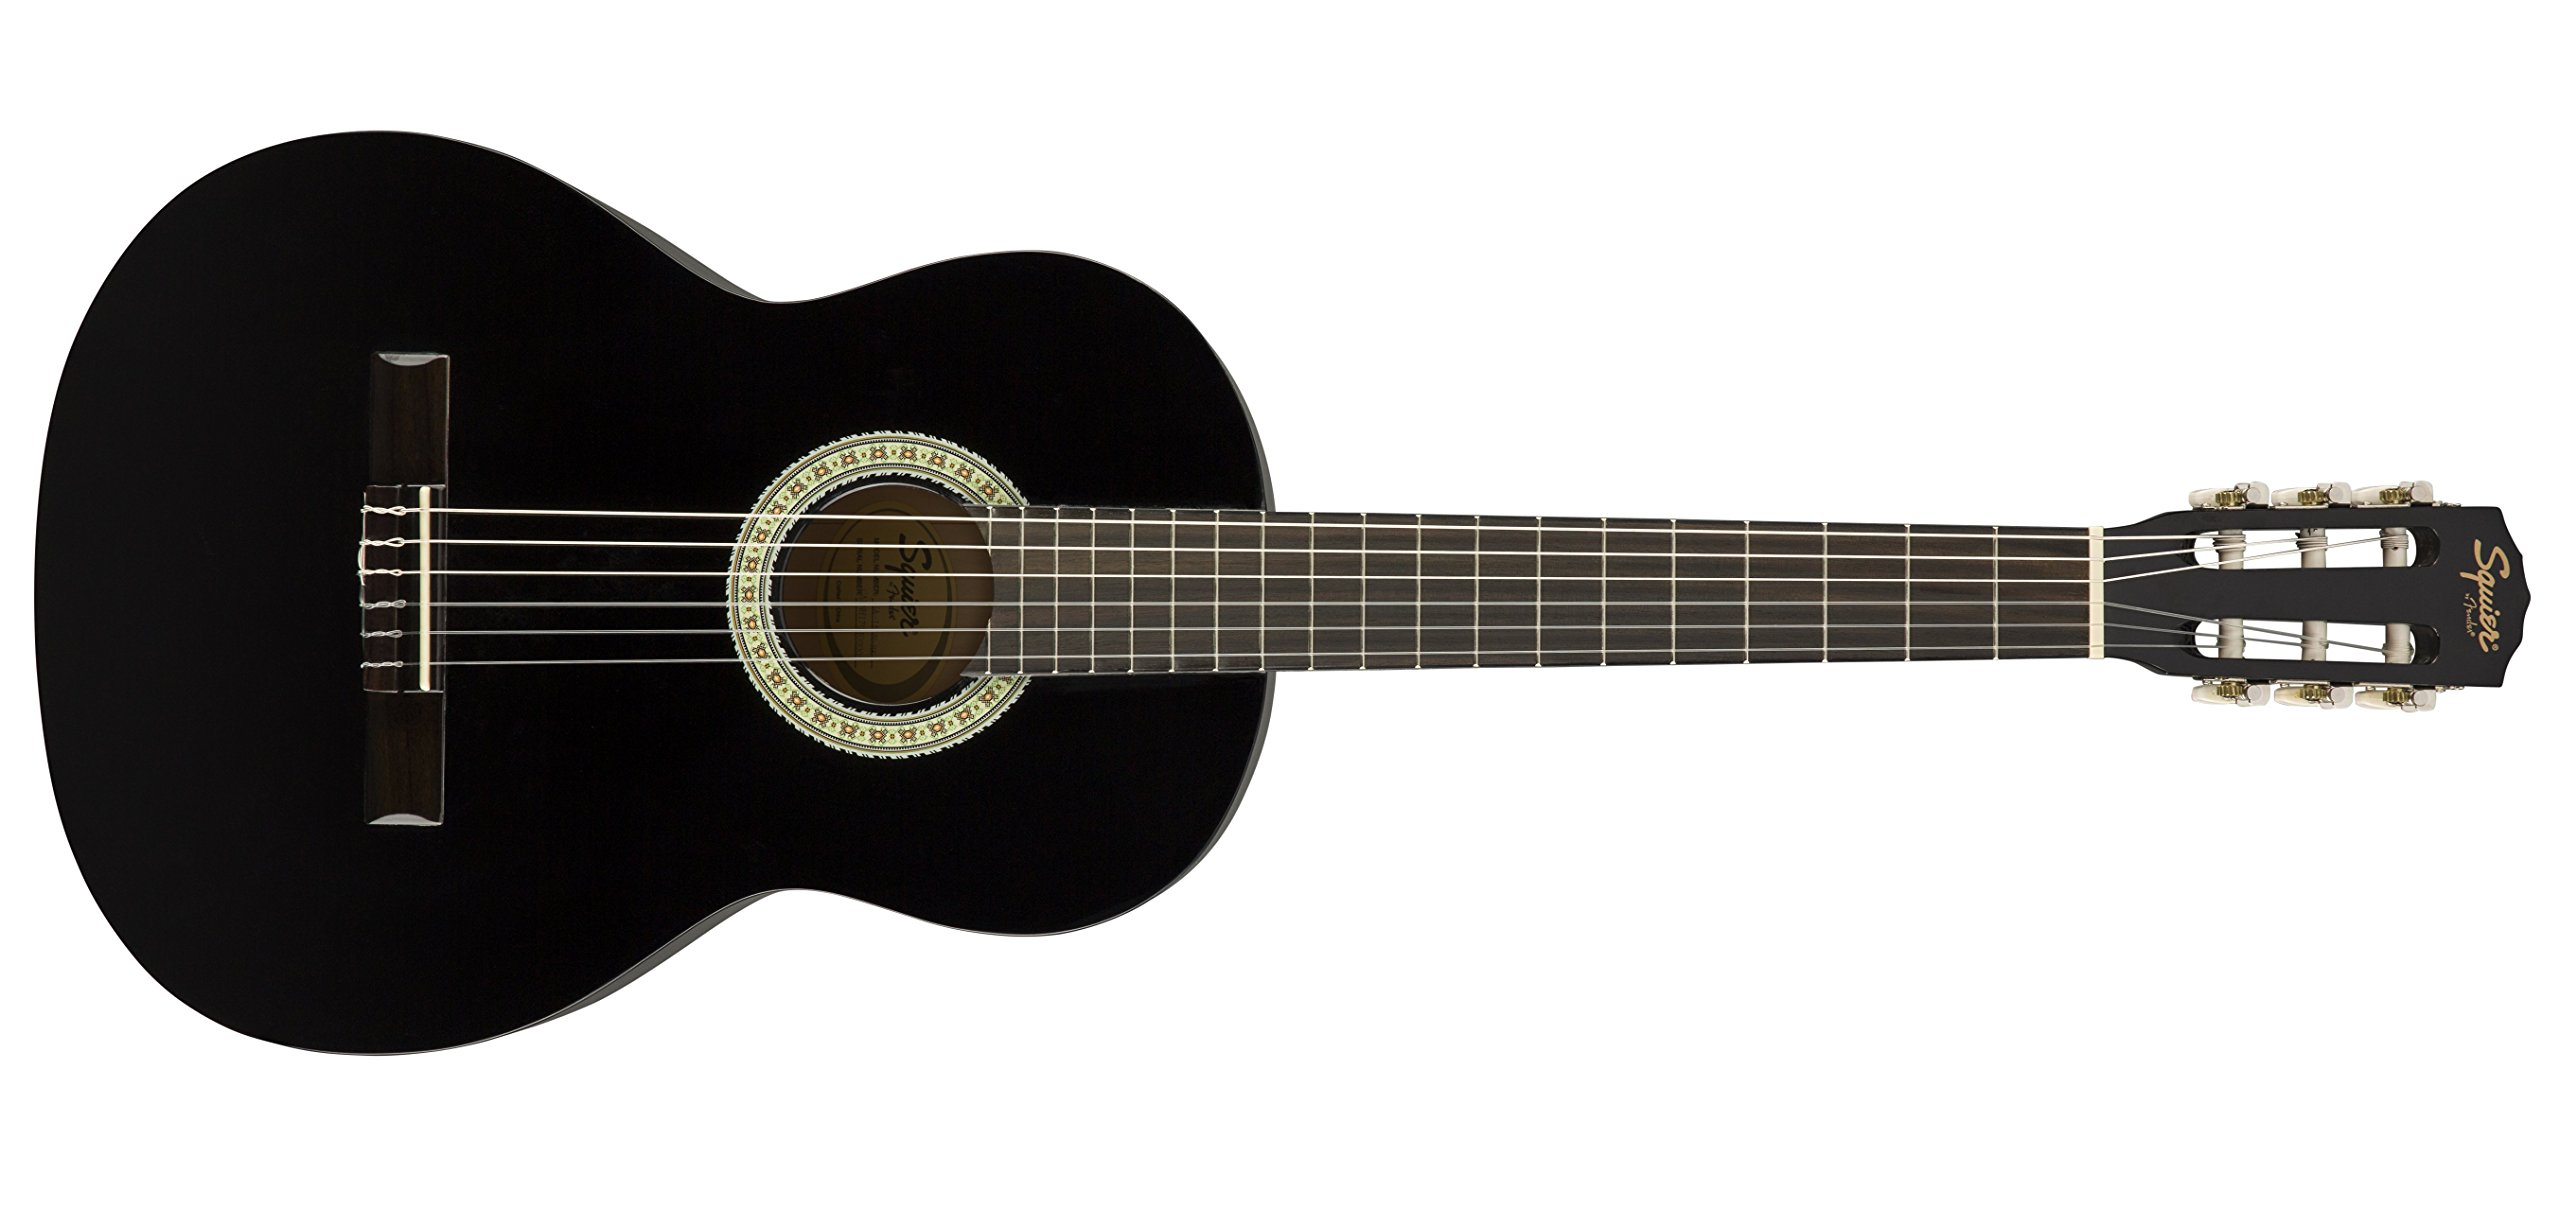 Squier SA-150N Squier Beginner Nylon String Classical Acoustic Guitar - Gloss Black Finish (Amazon Exclusive)